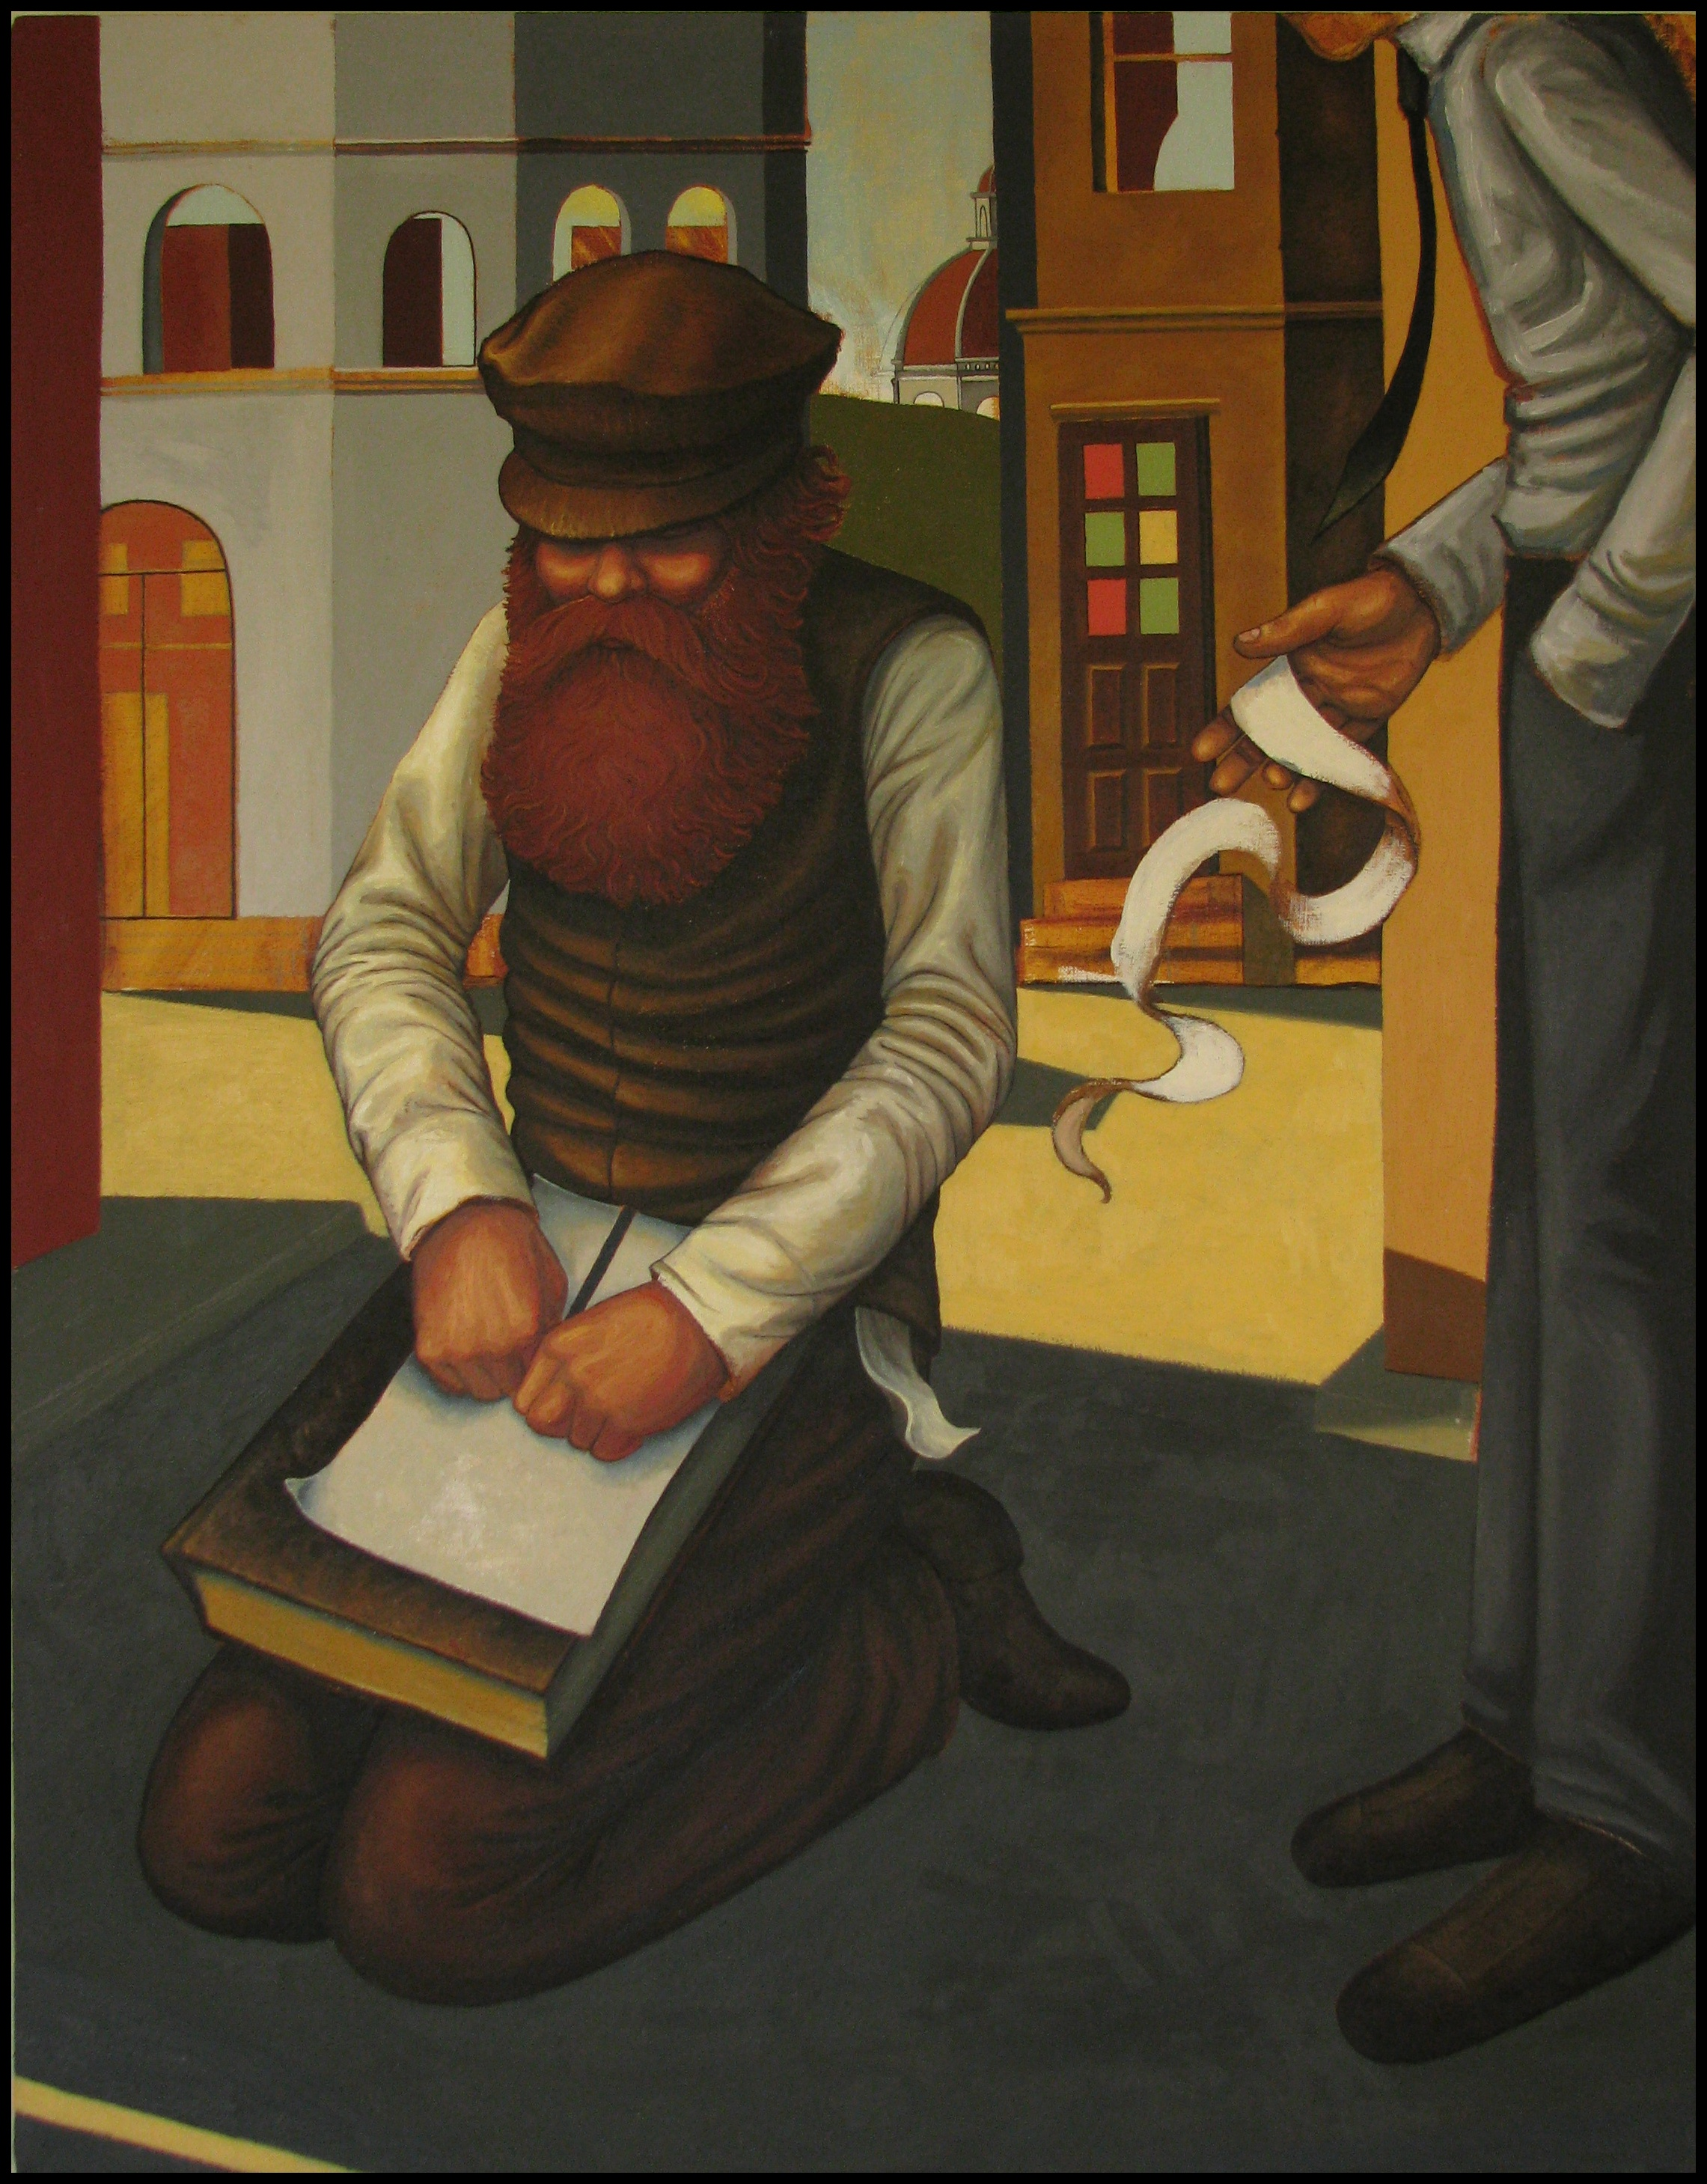 Painting Culture Conflict: My Name Is Asher Lev and the Work of Rabbi Chaim Potok